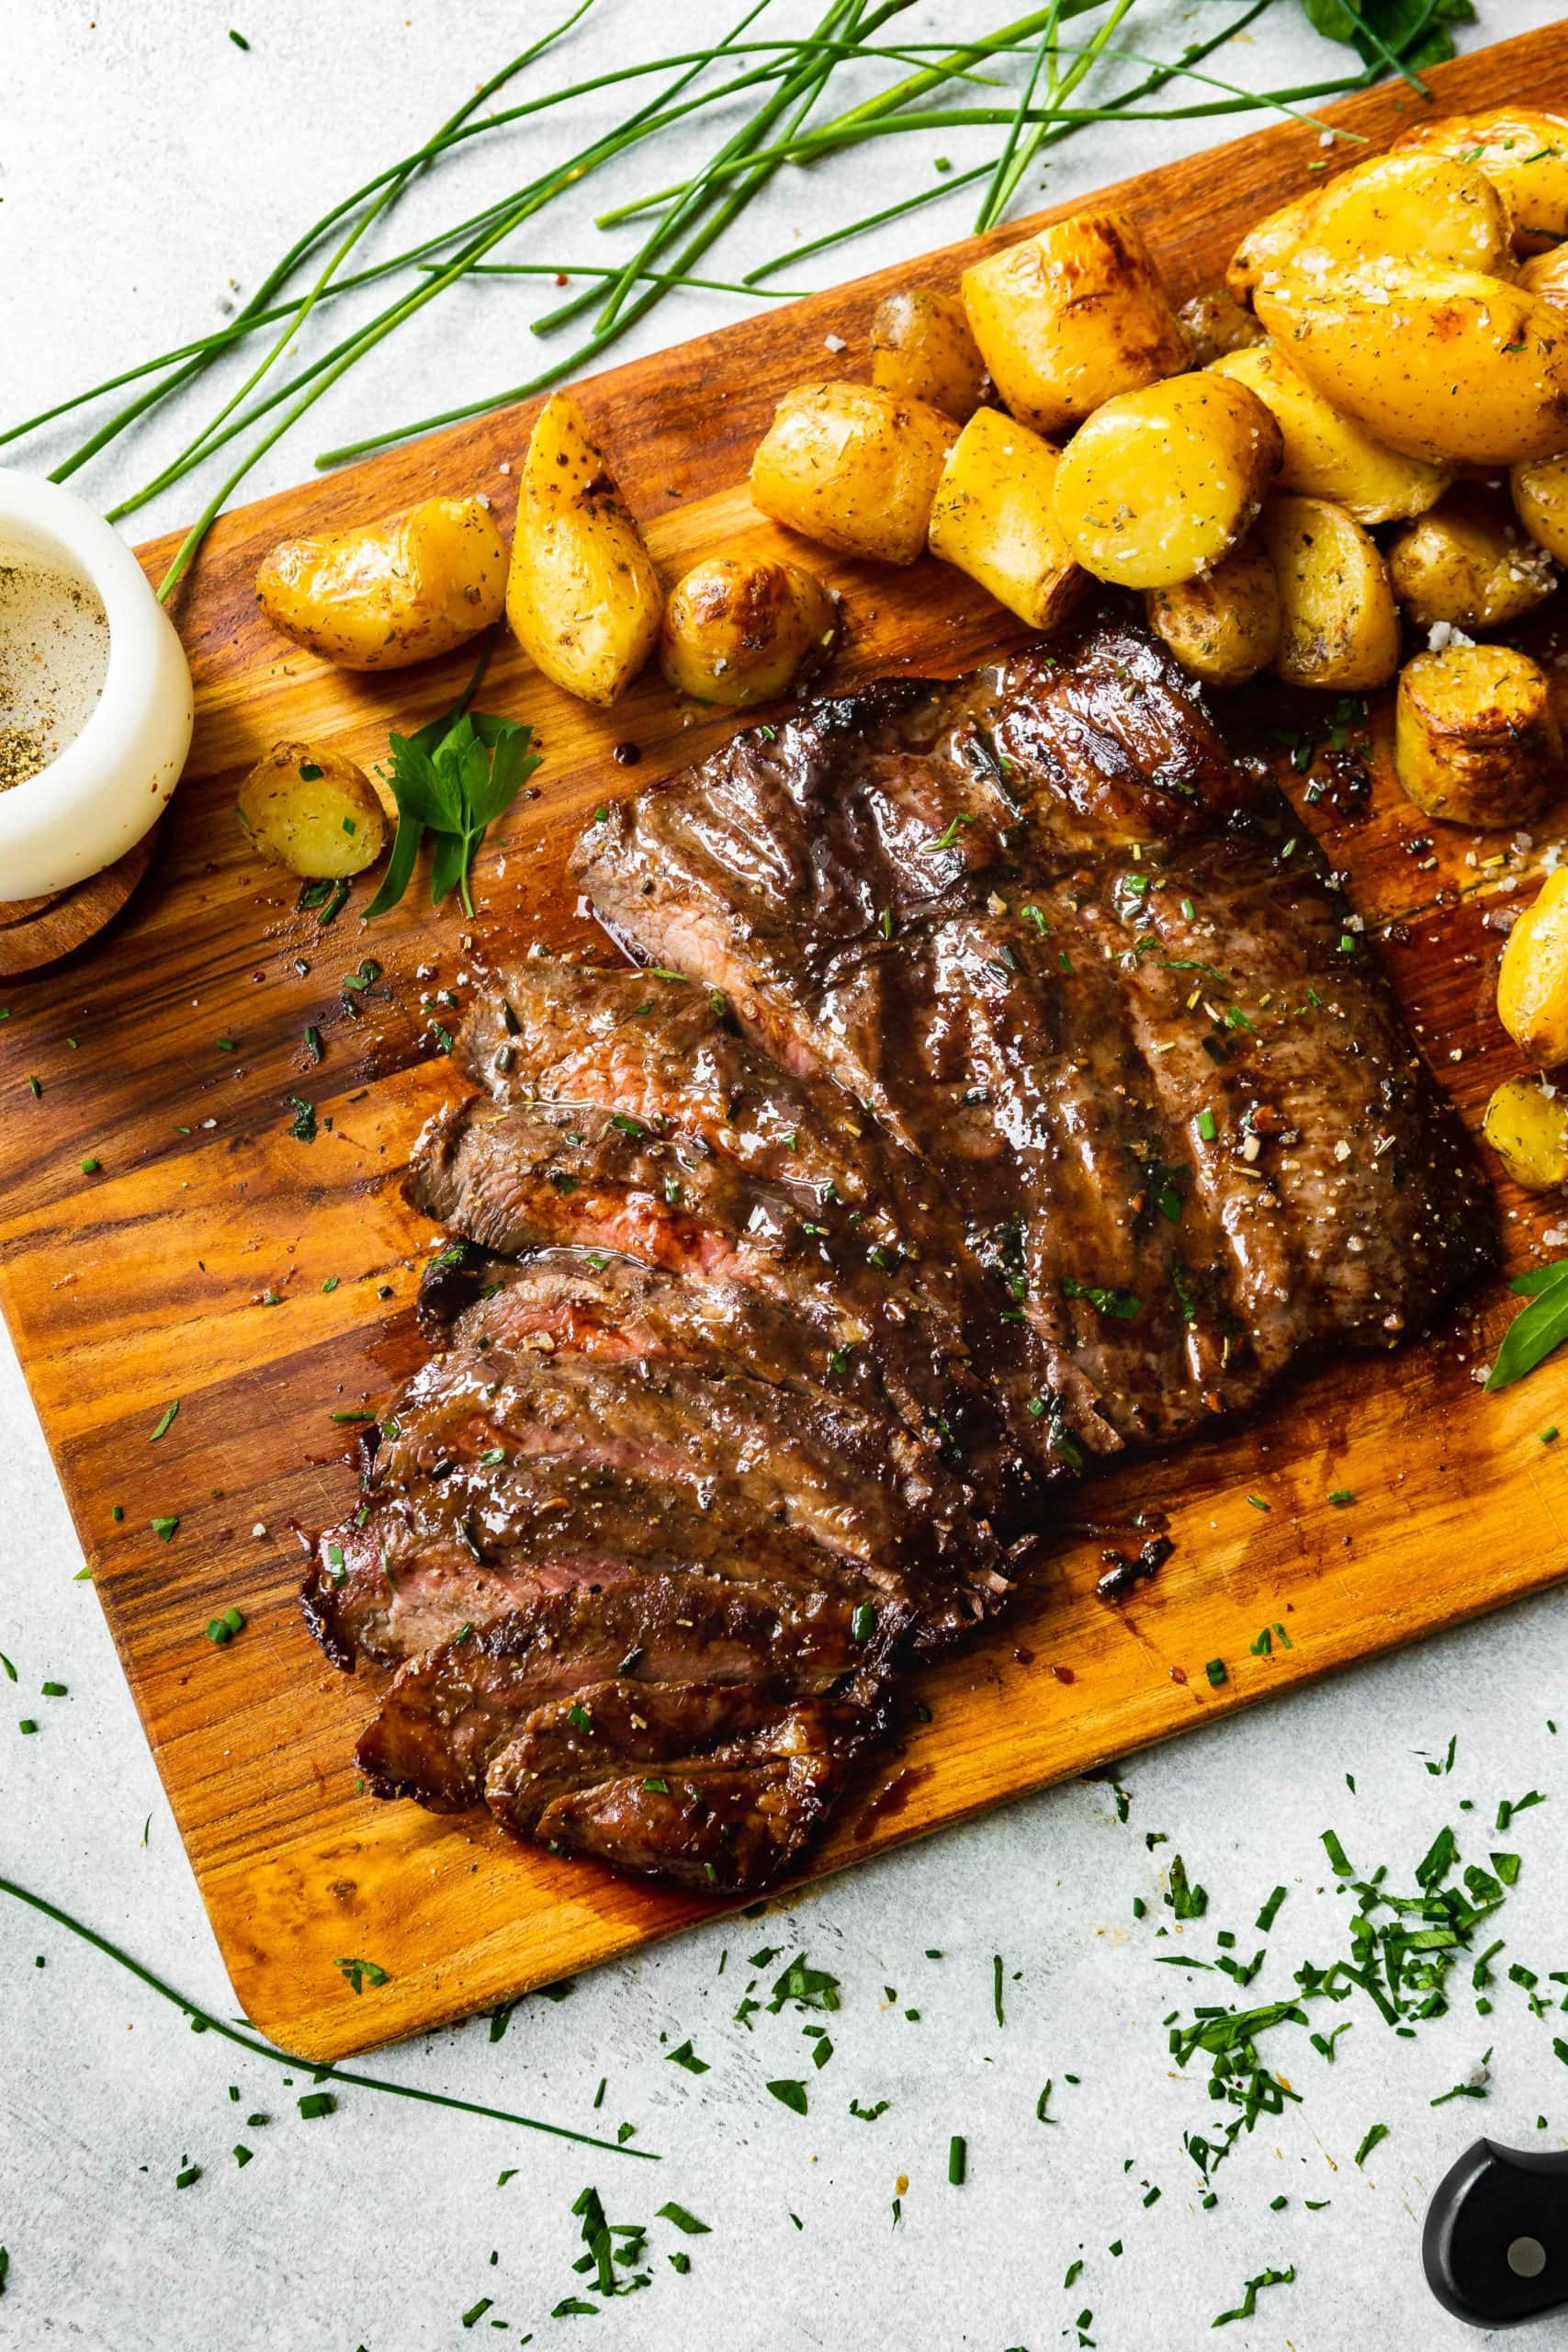 roasted yukon gold potatoes with a grilled flank steak sliced thinly